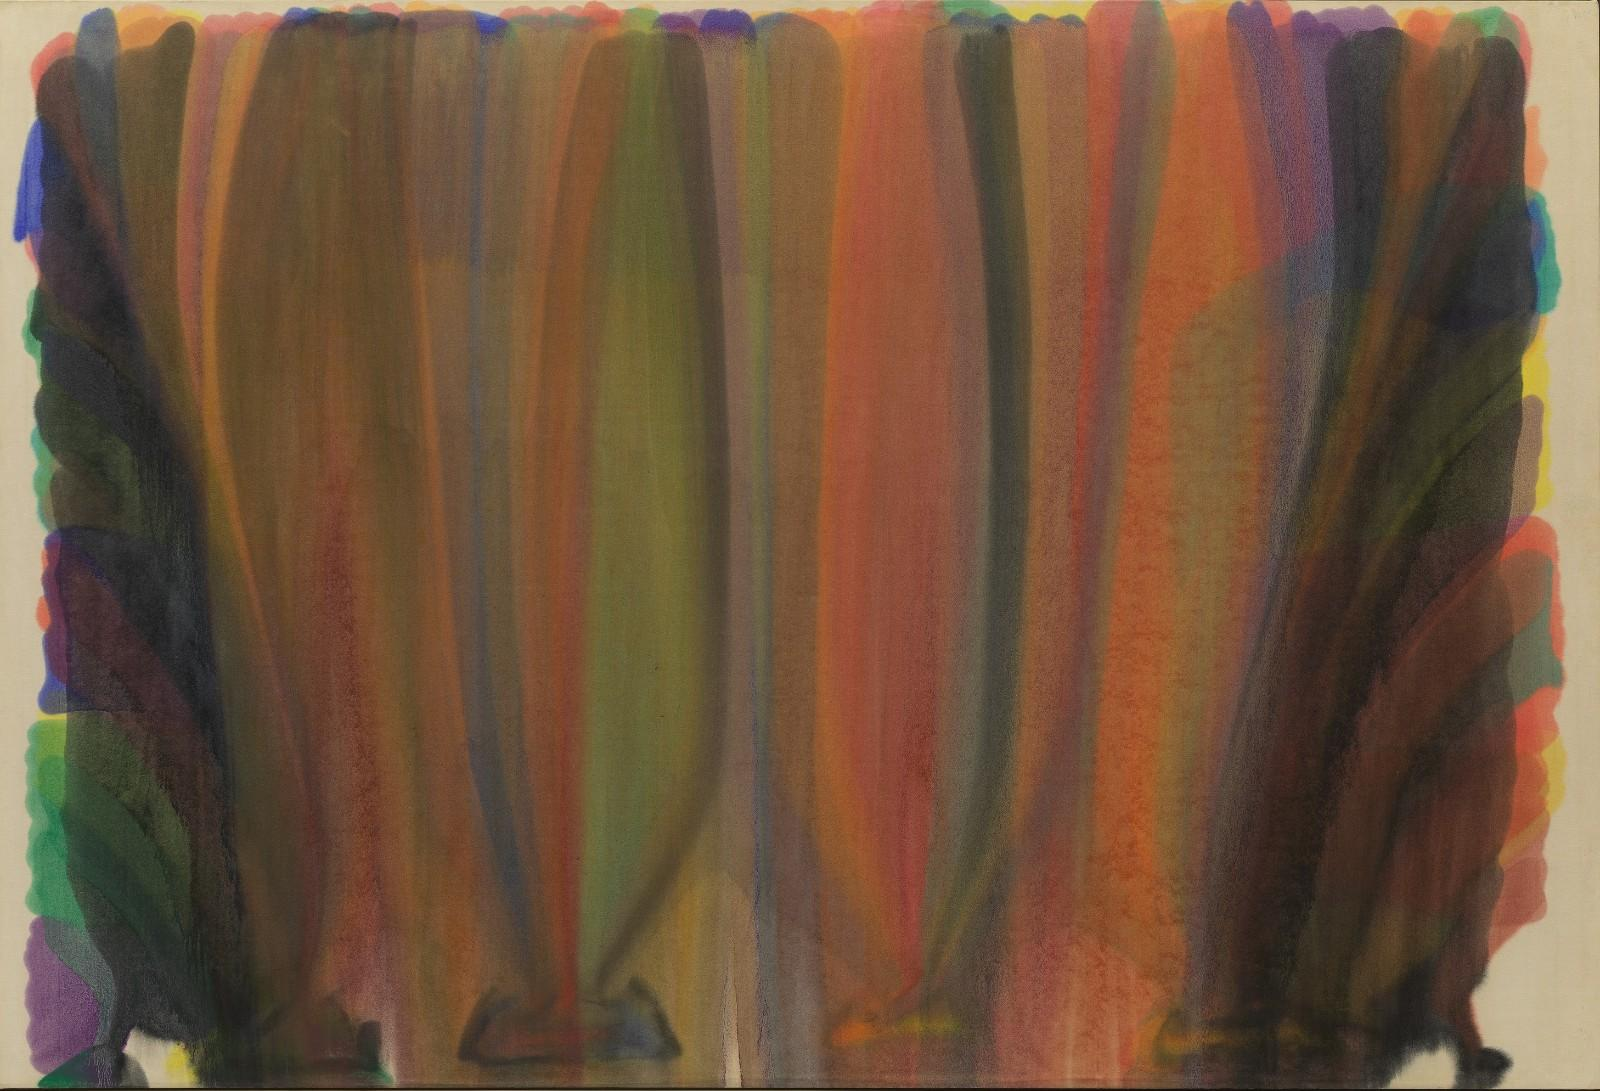 Morris Louis, 1-68, 1962. Acrylic resin on canvas abstract painting of vertical streaks of color